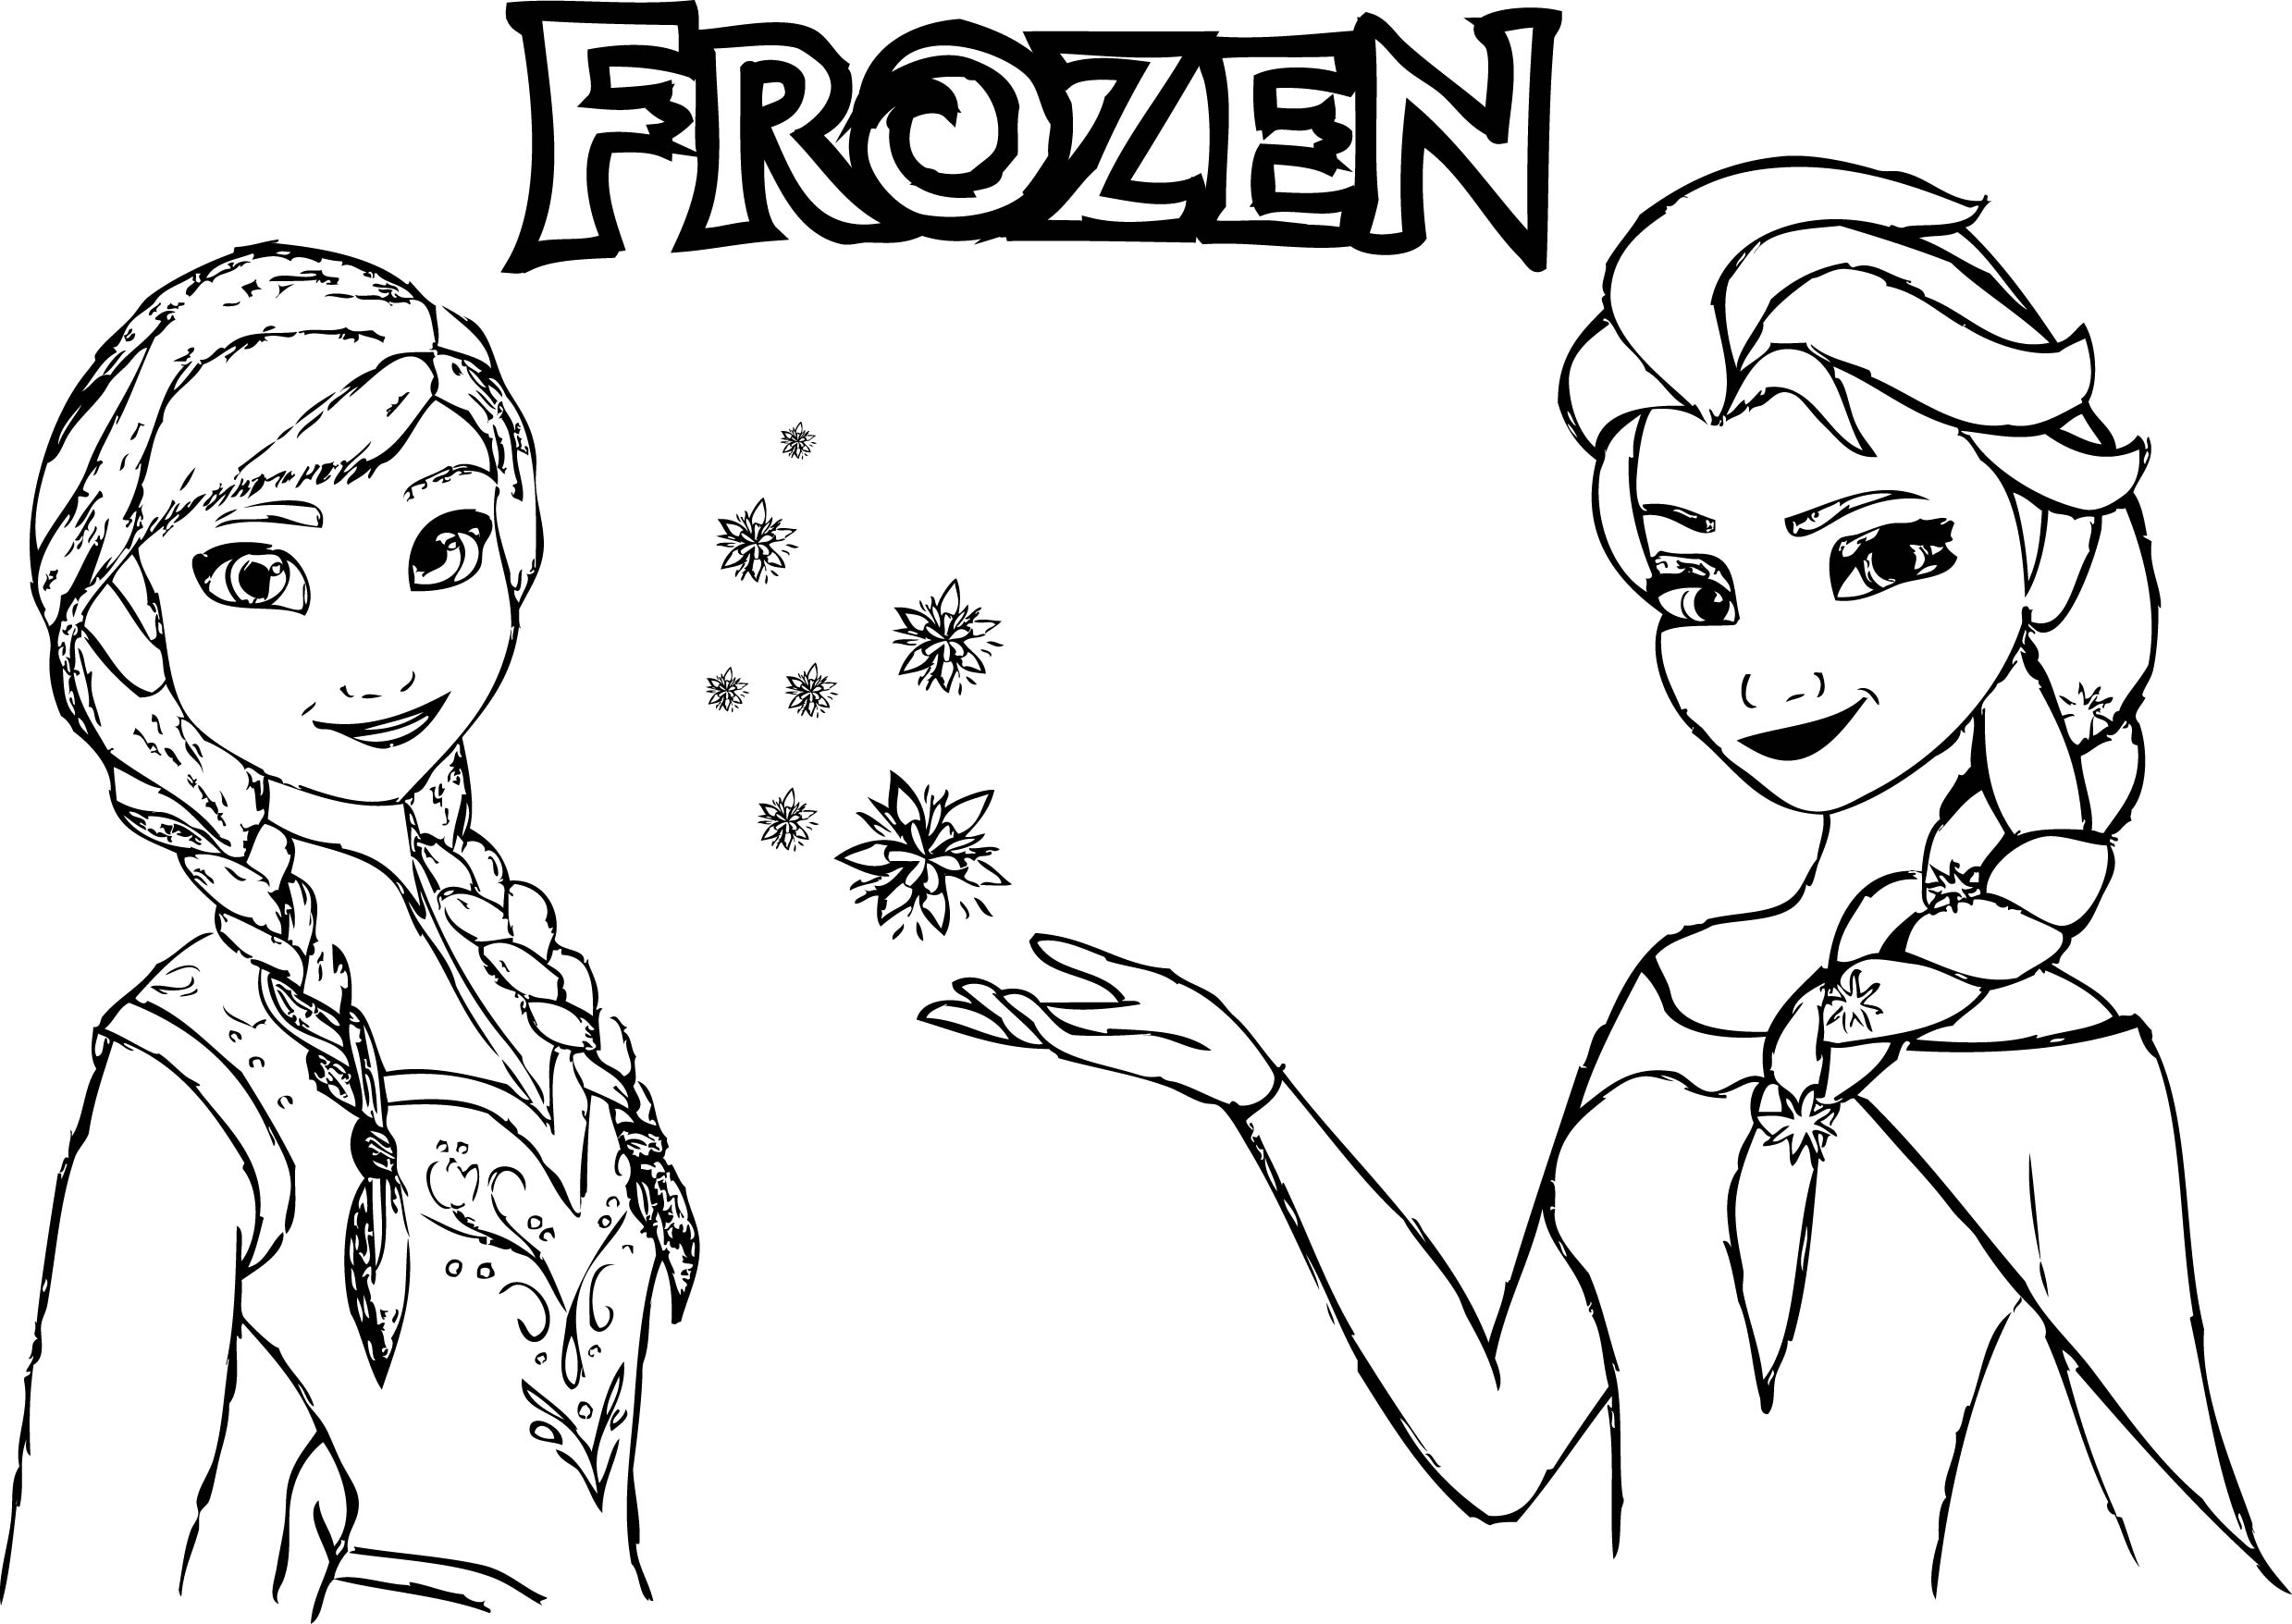 Elsa Frozen Coloring Pages Classy Frozen Anna Elsa Magic Coloring  Wecoloringpage Design Ideas